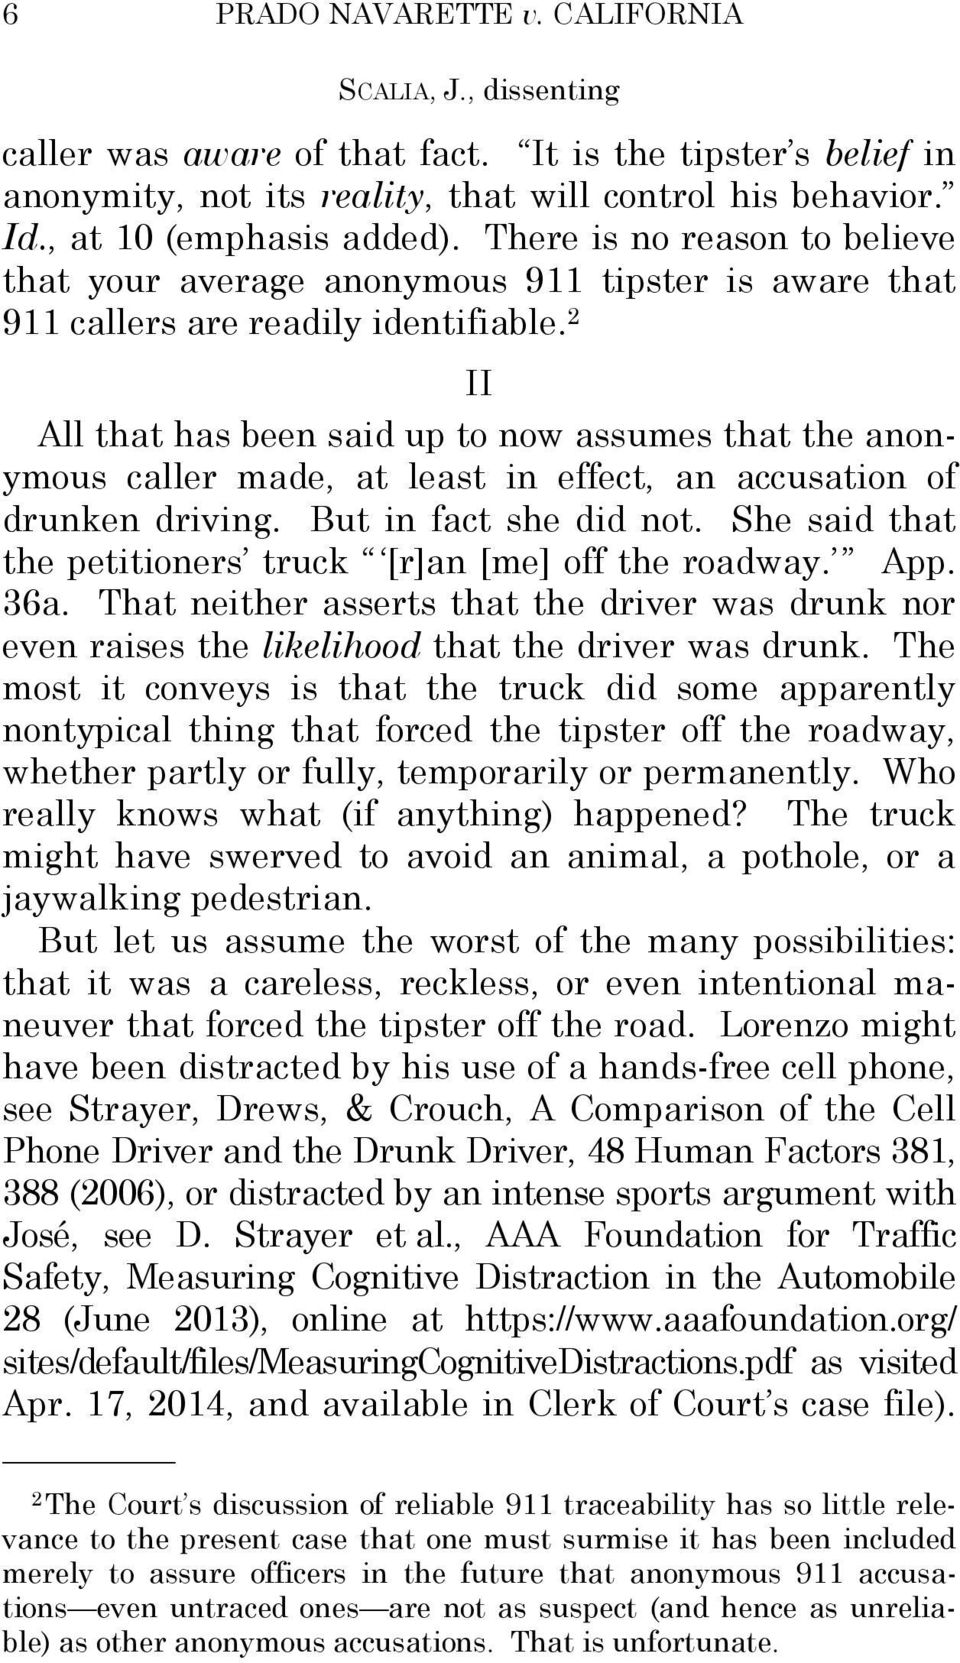 2 II All that has been said up to now assumes that the anonymous caller made, at least in effect, an accusation of drunken driving. But in fact she did not.